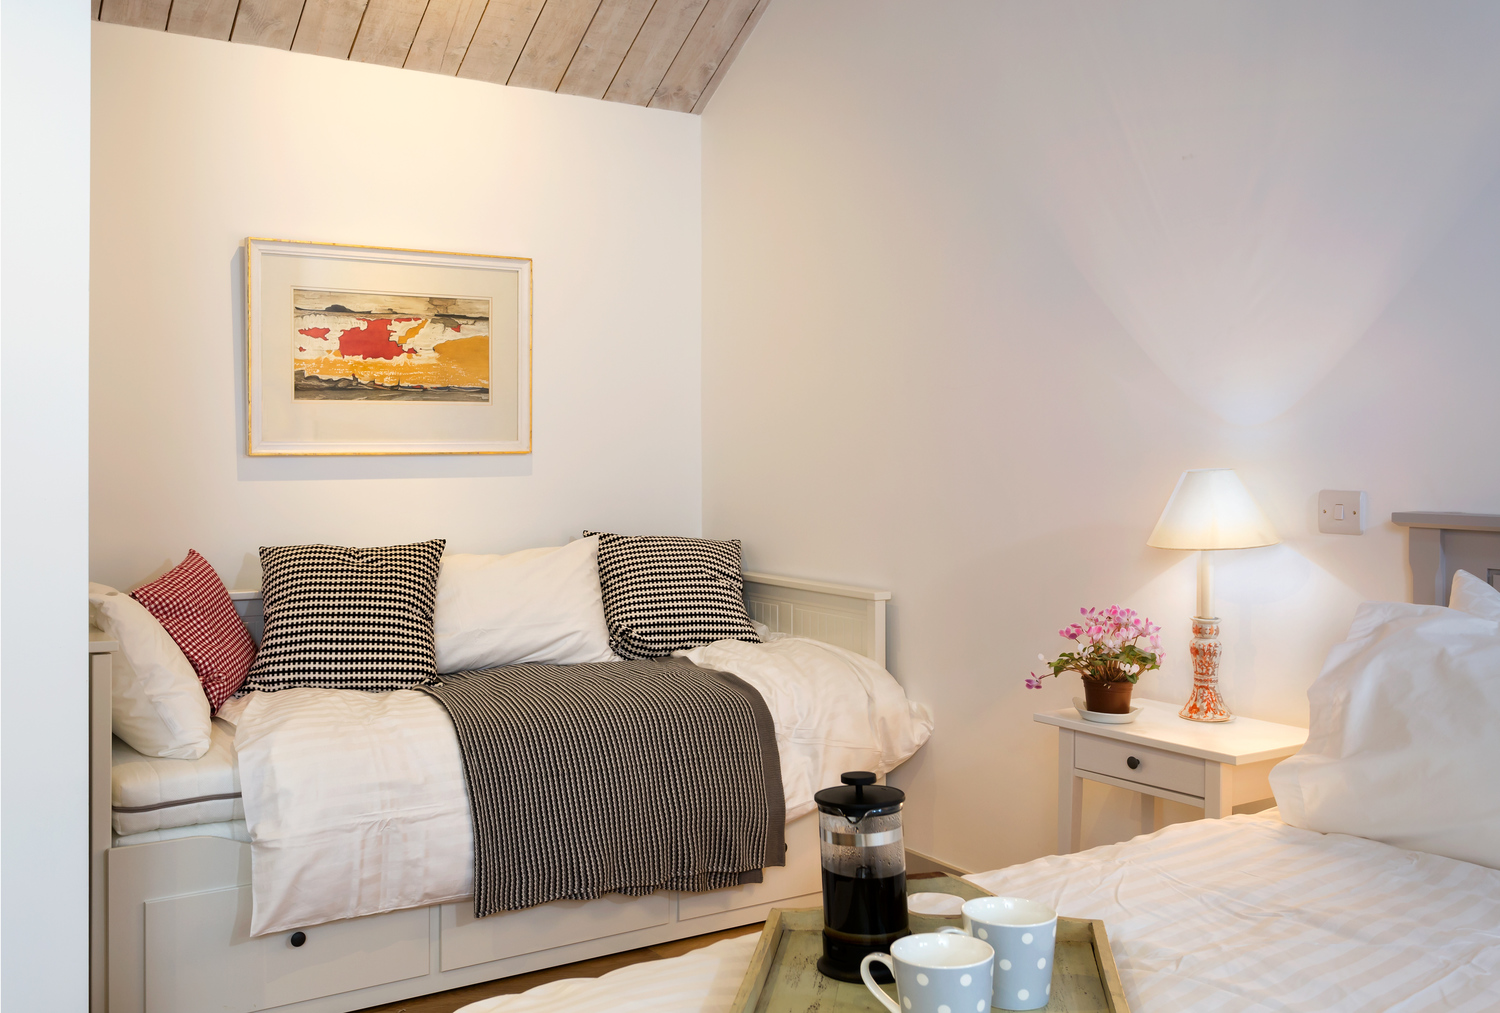 Copy of The Vineyard - Lordship's Barns - bedroom 2